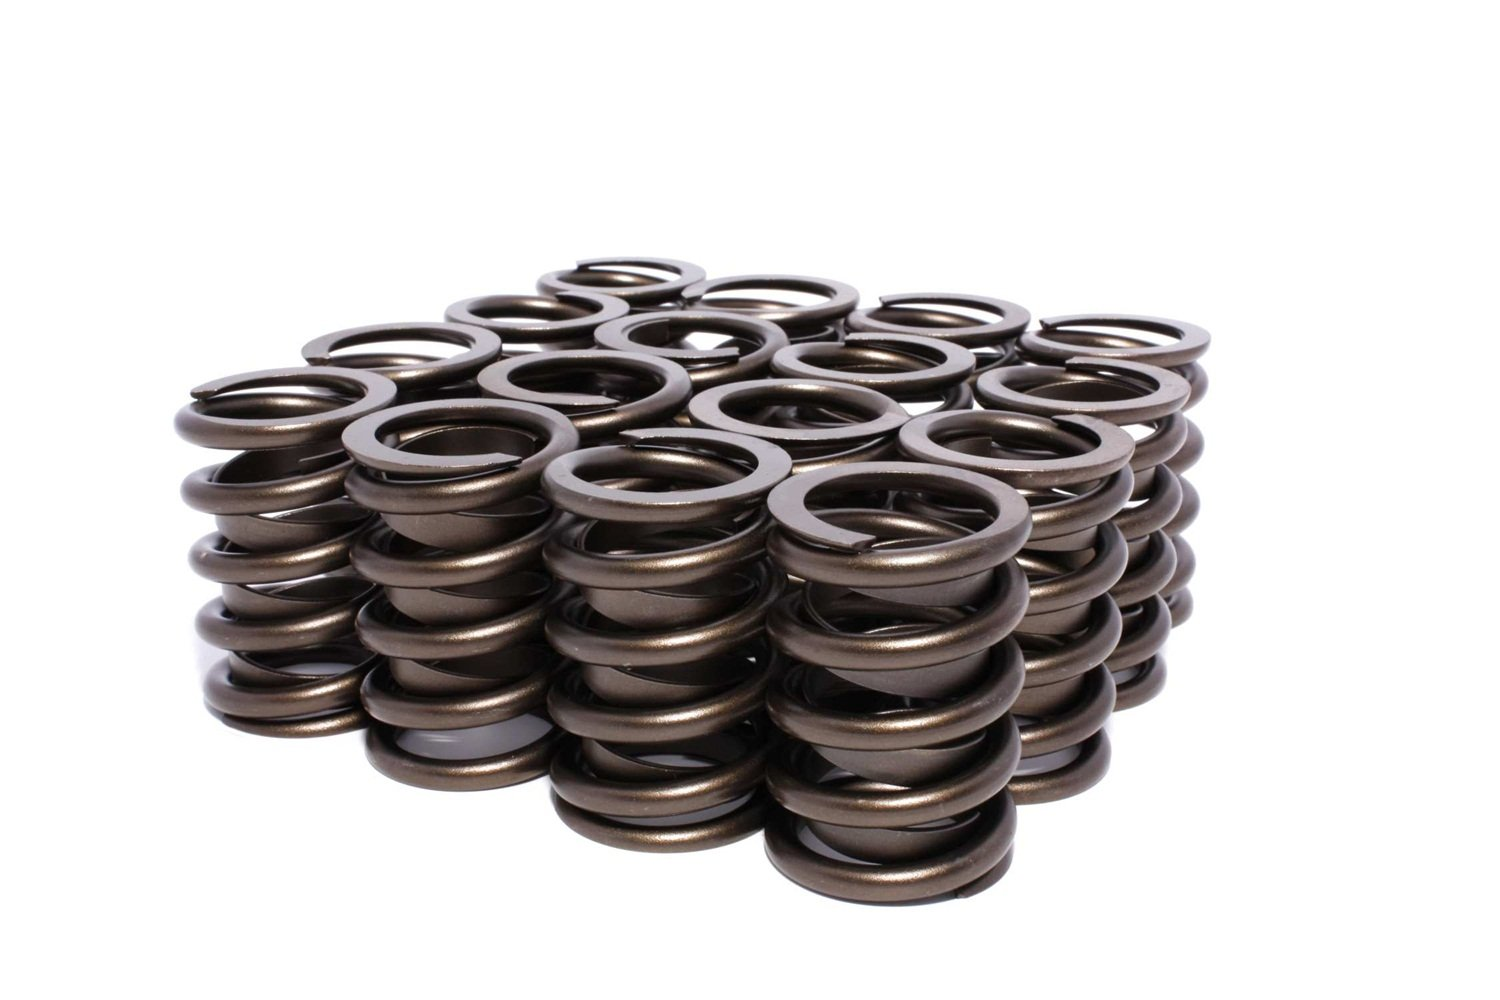 Competition Cams 911-16 Single Valve Springs nobrandname